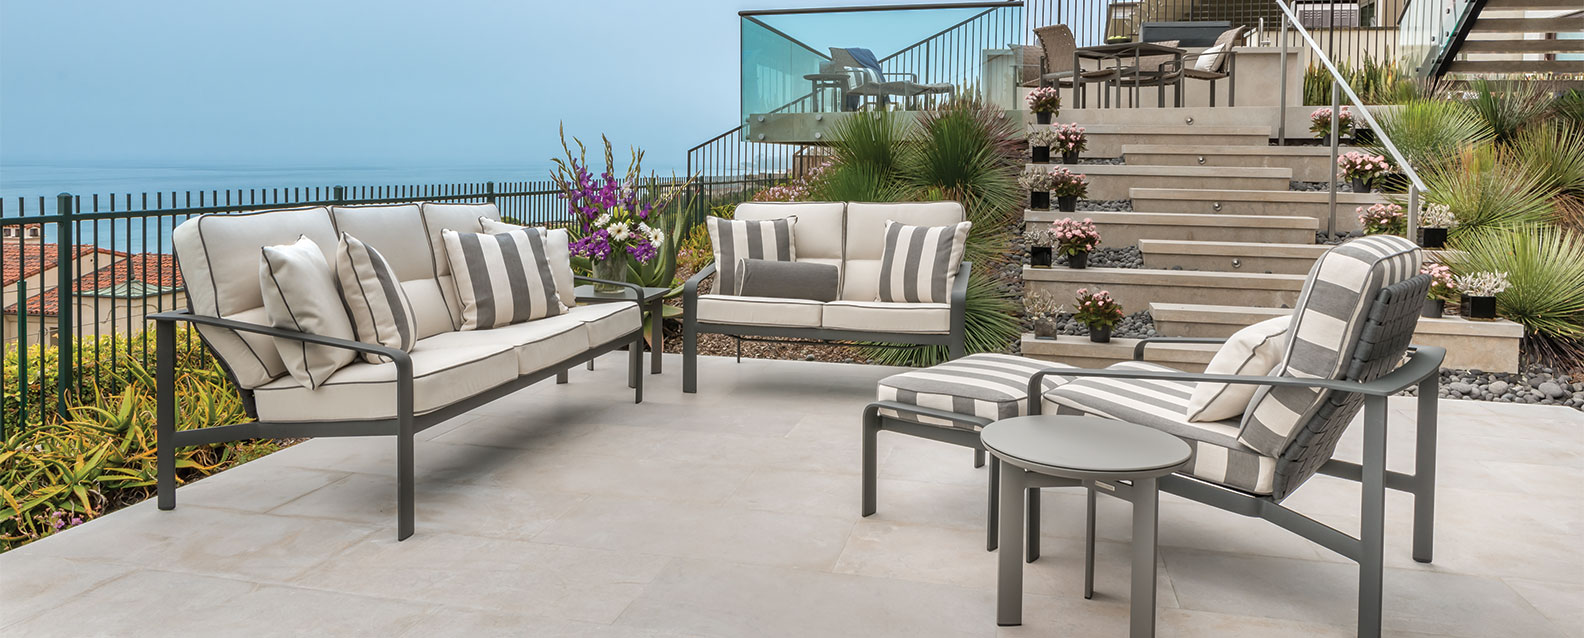 Brown jordan softscapes cushion seating summer house patio for Brown jordan lawn furniture